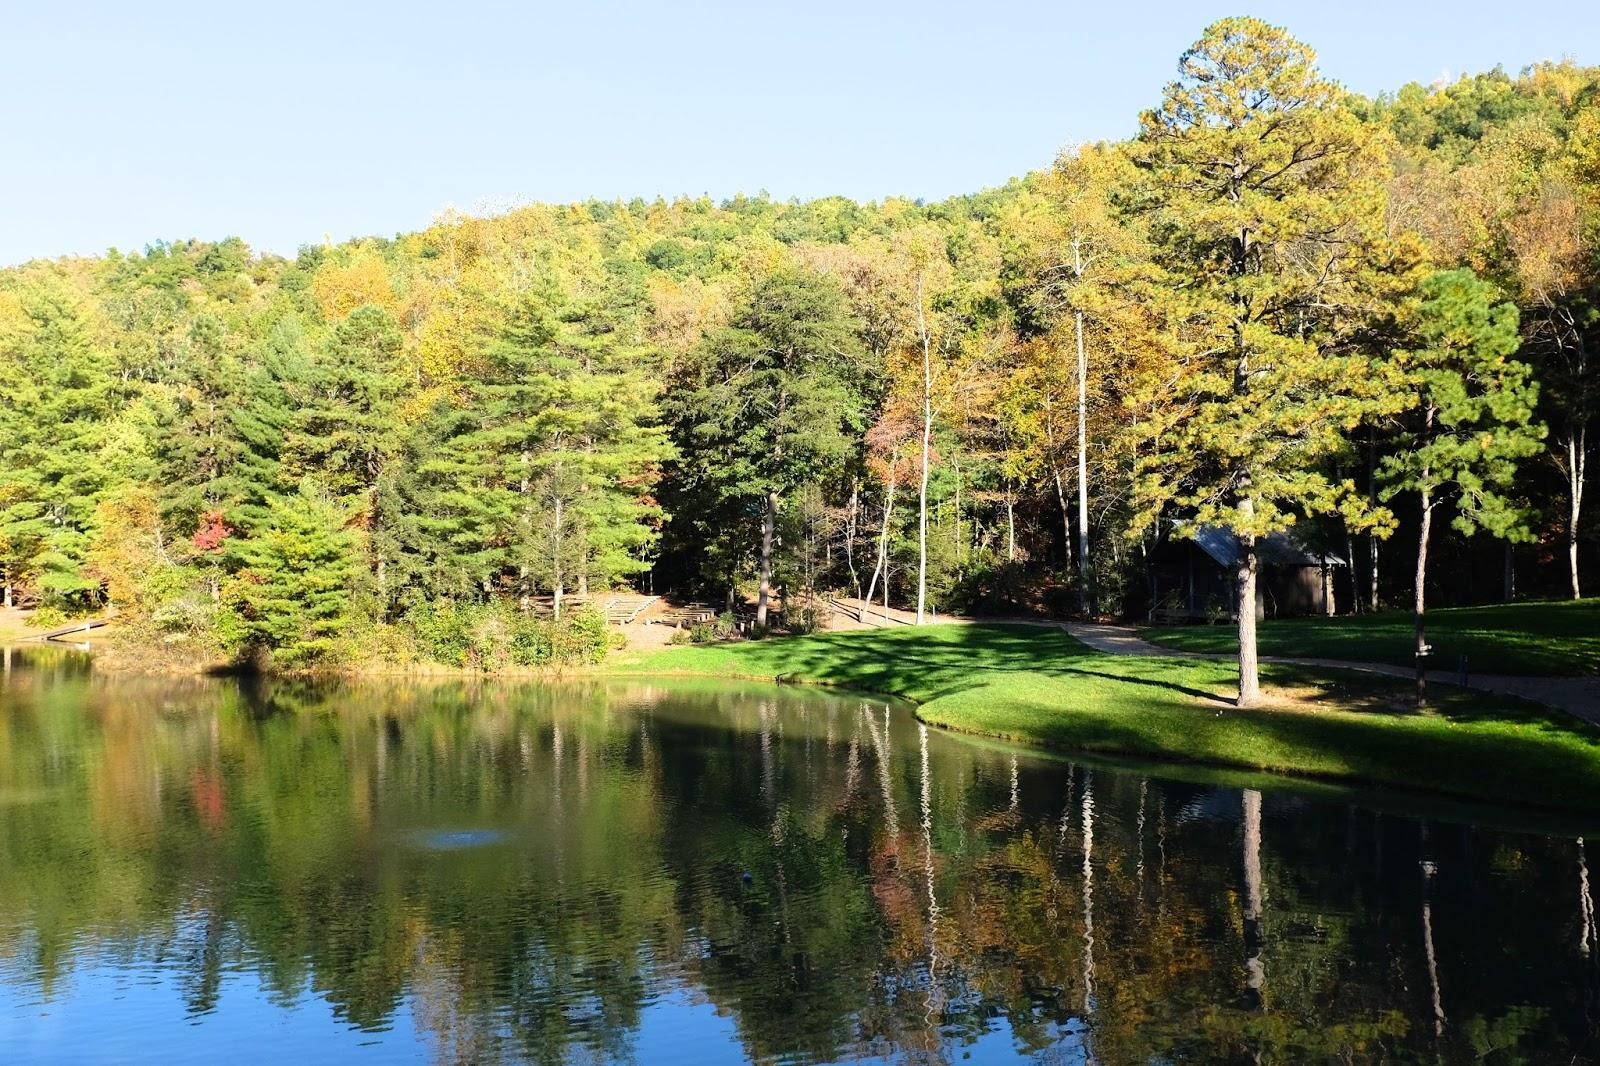 The leaves are beginning to gain color in mid-October, overlooking Upper Lake.